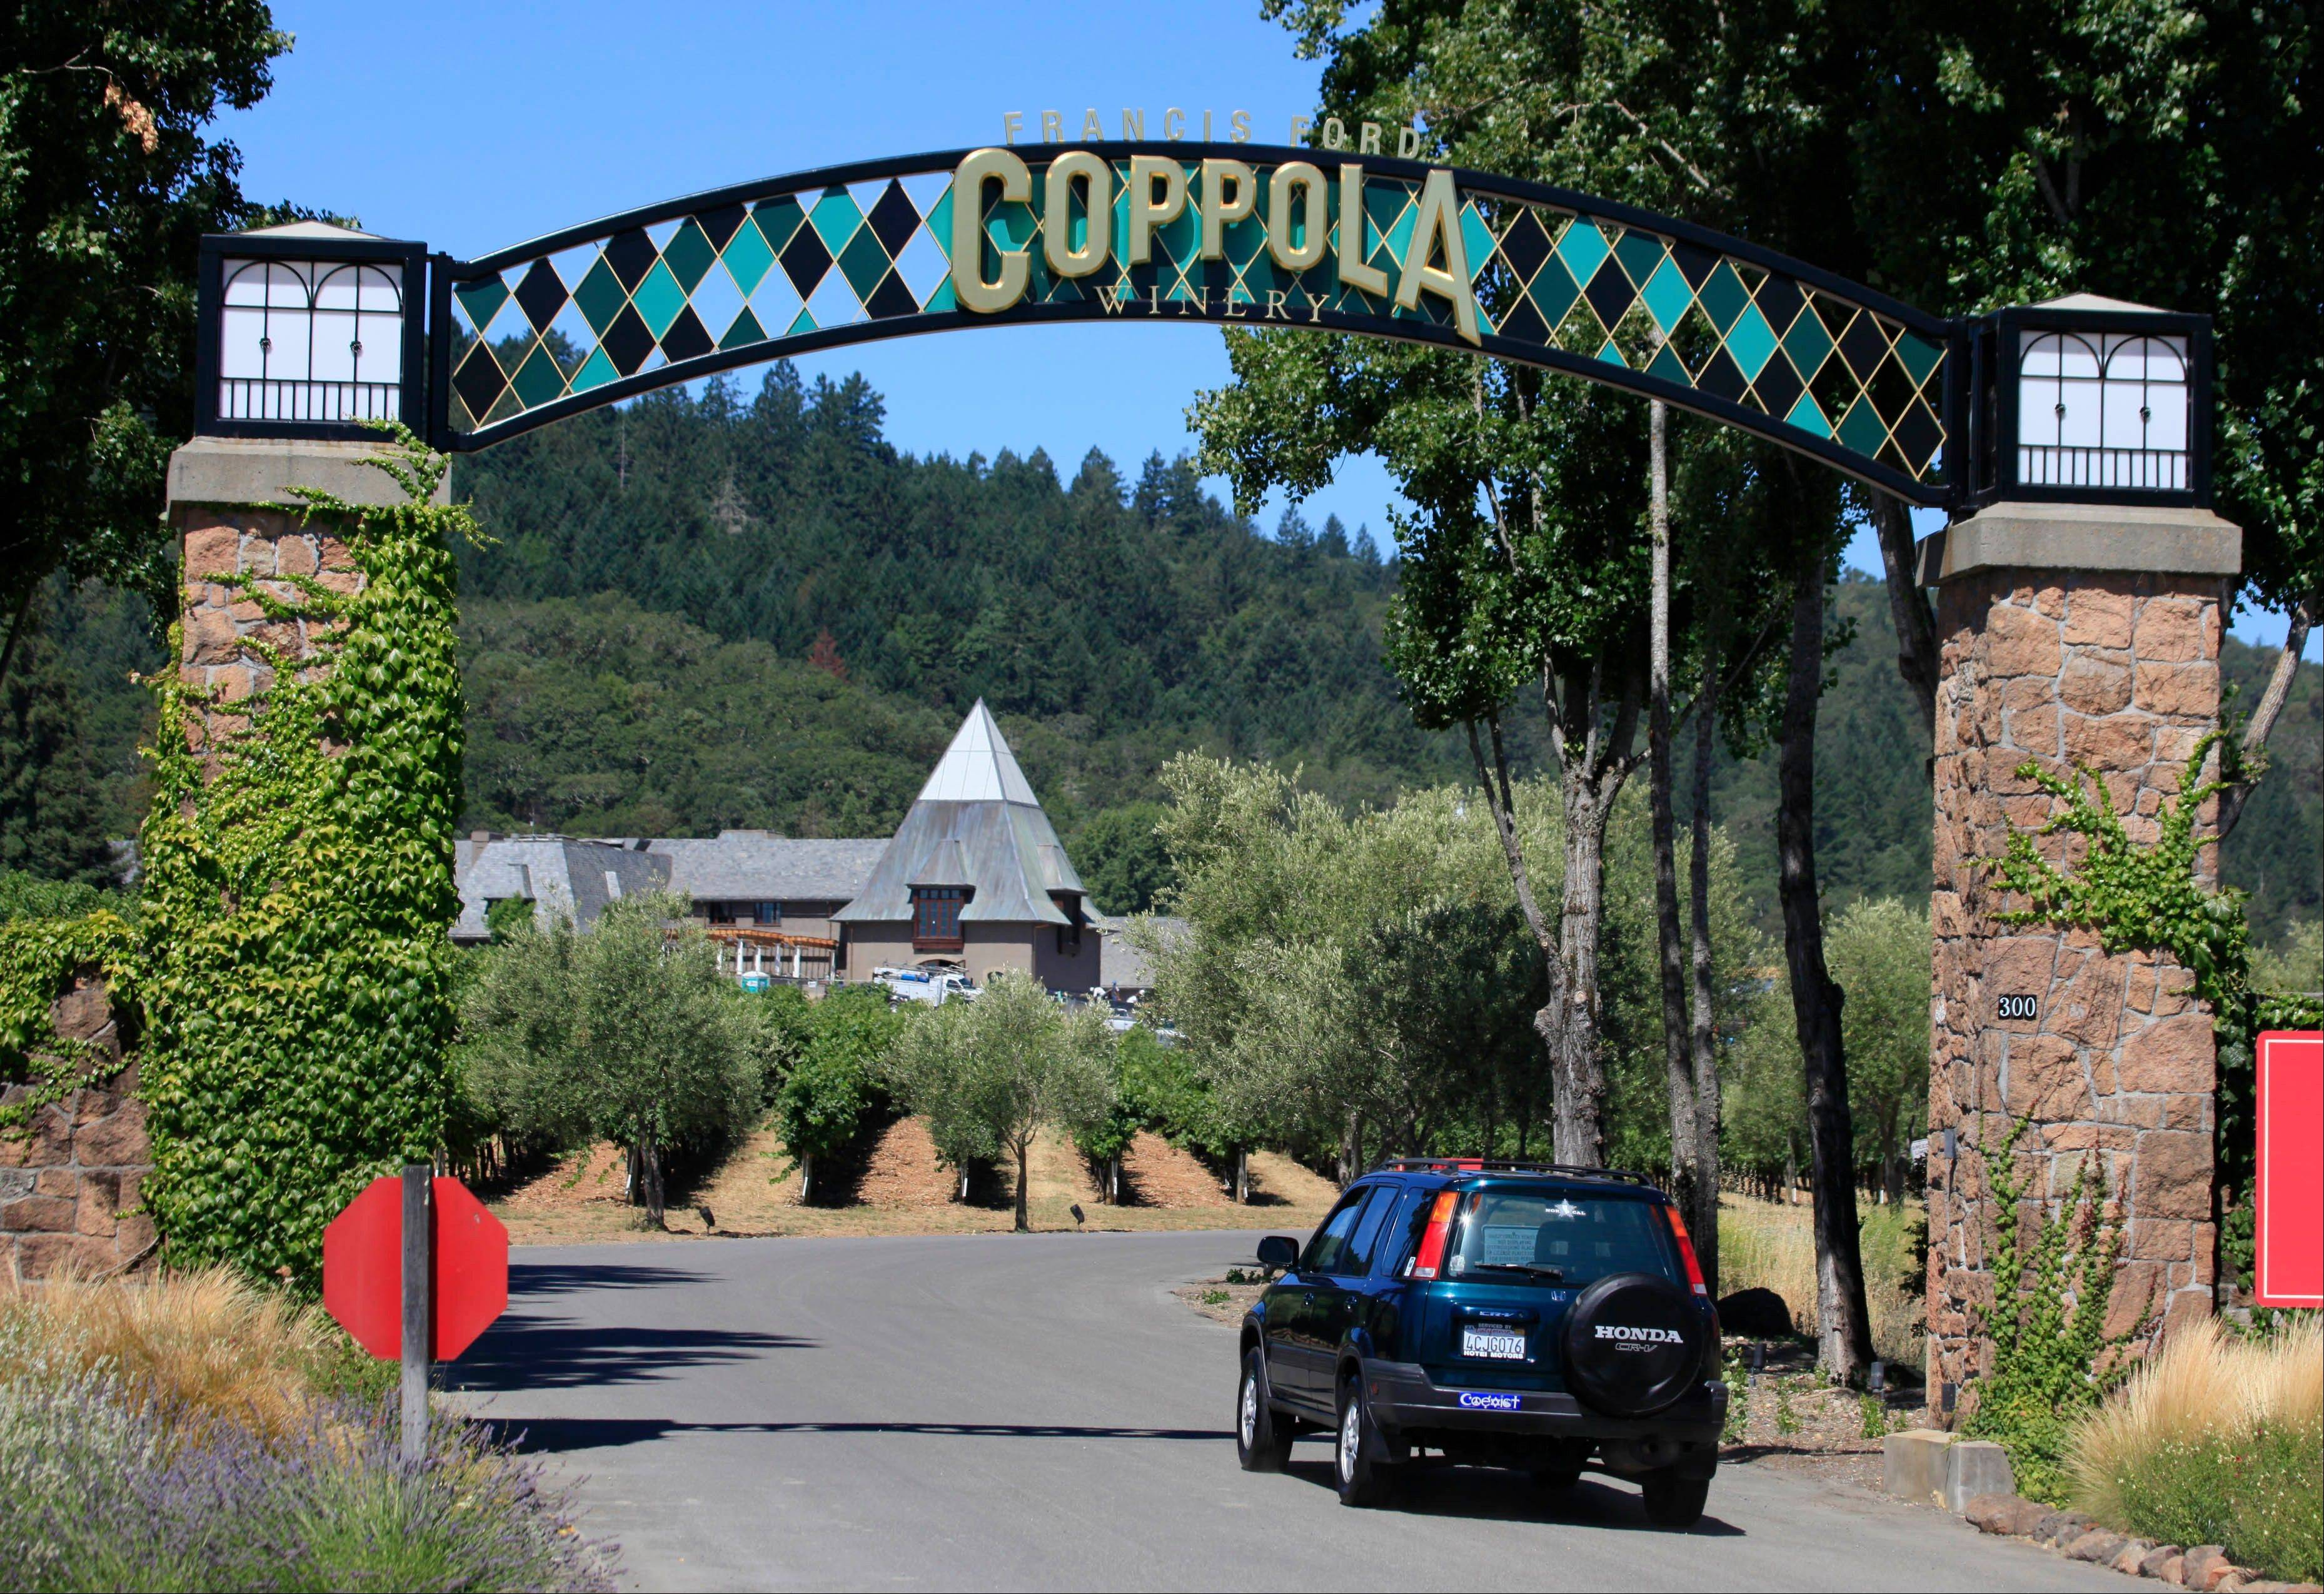 A car enters the Francis Ford Coppola Winery in Geyserville, Calif. Part resort, part winery, this property in Sonoma County has a lot of extras including a swimming pool, cabines equipped with showers for rent, bocce courts and two places to eat.